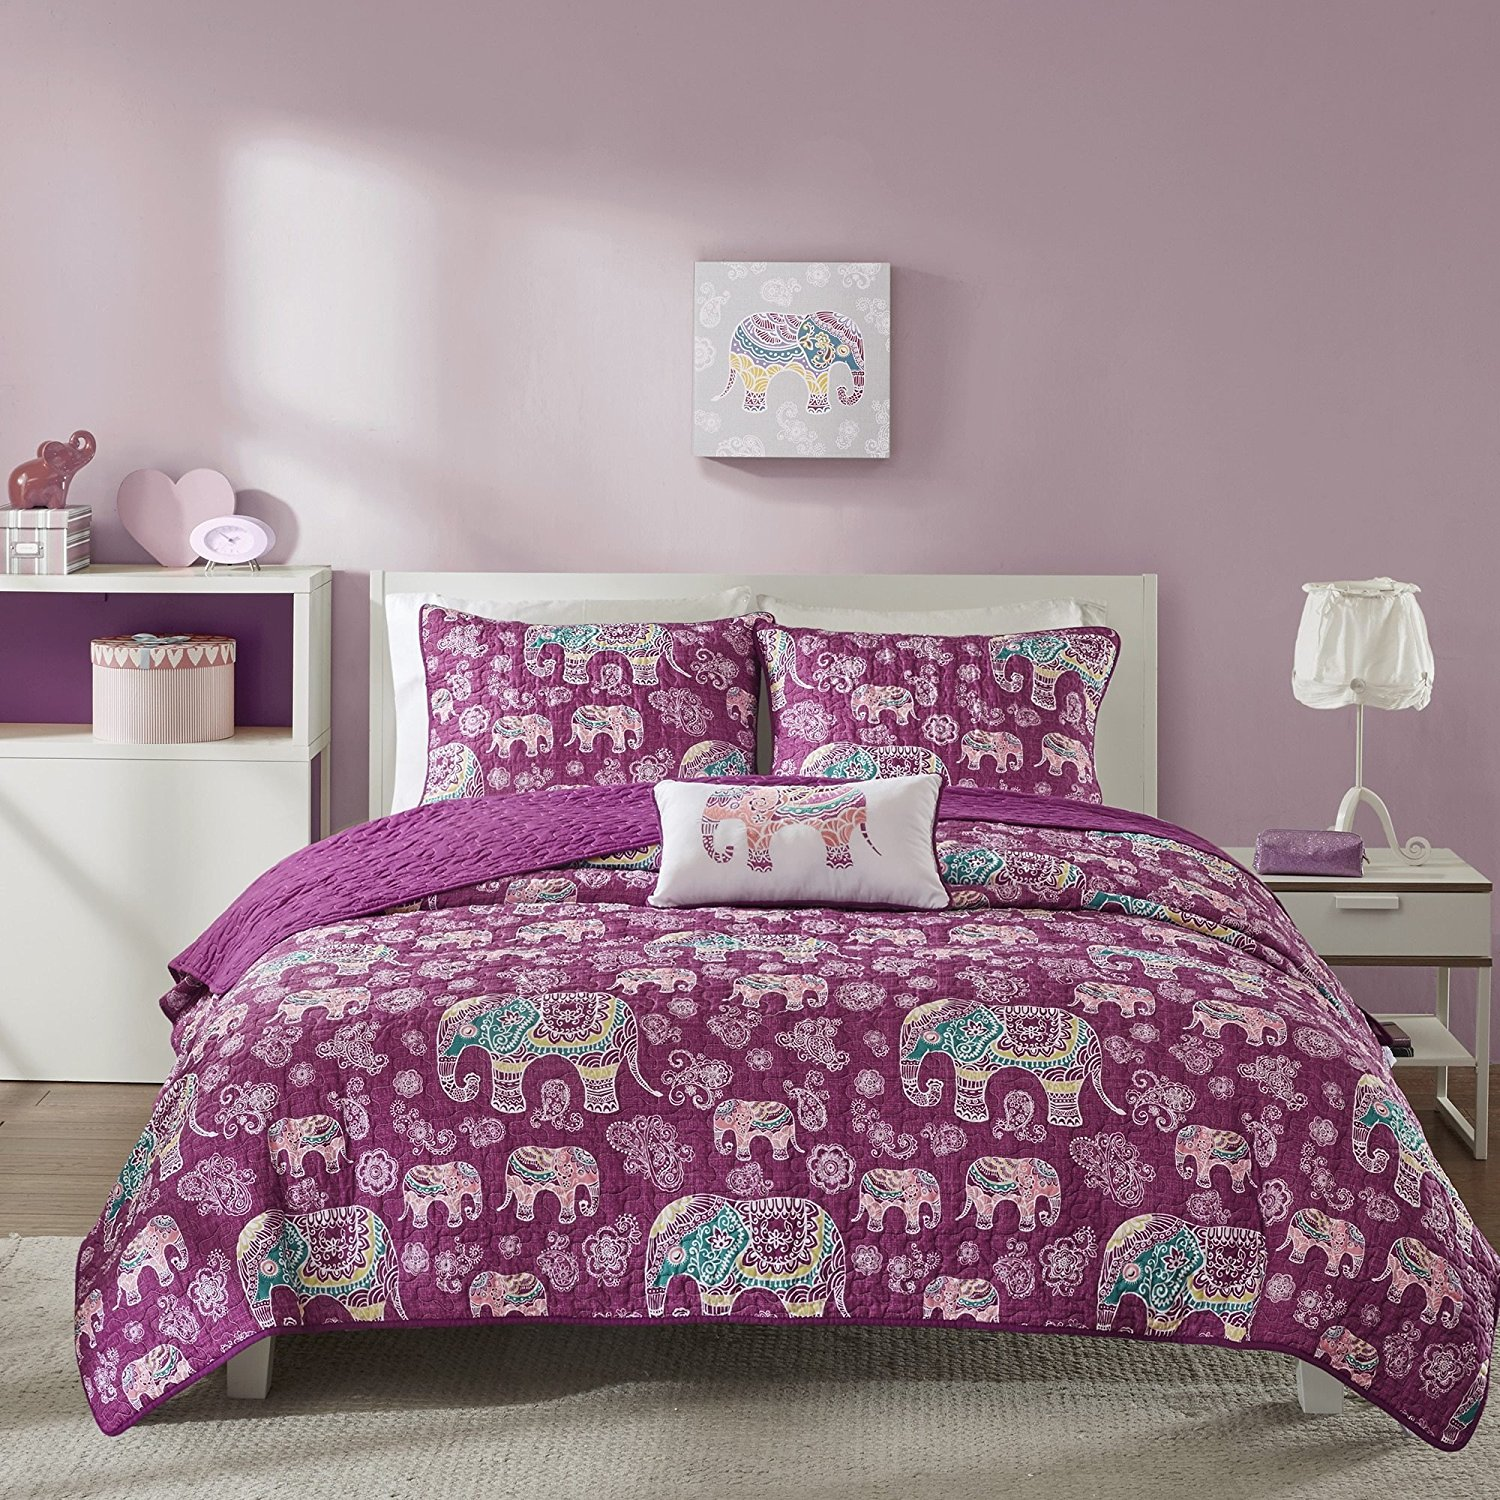 3 Piece Girls Berry Purple Boho Chic Elephant Theme Coverlet Twin XL Set, Beautiful Girly All Over Bohemian Paisley Floral Bedding, Multi Elephants Flower Themed Pattern, Plum Yellow White